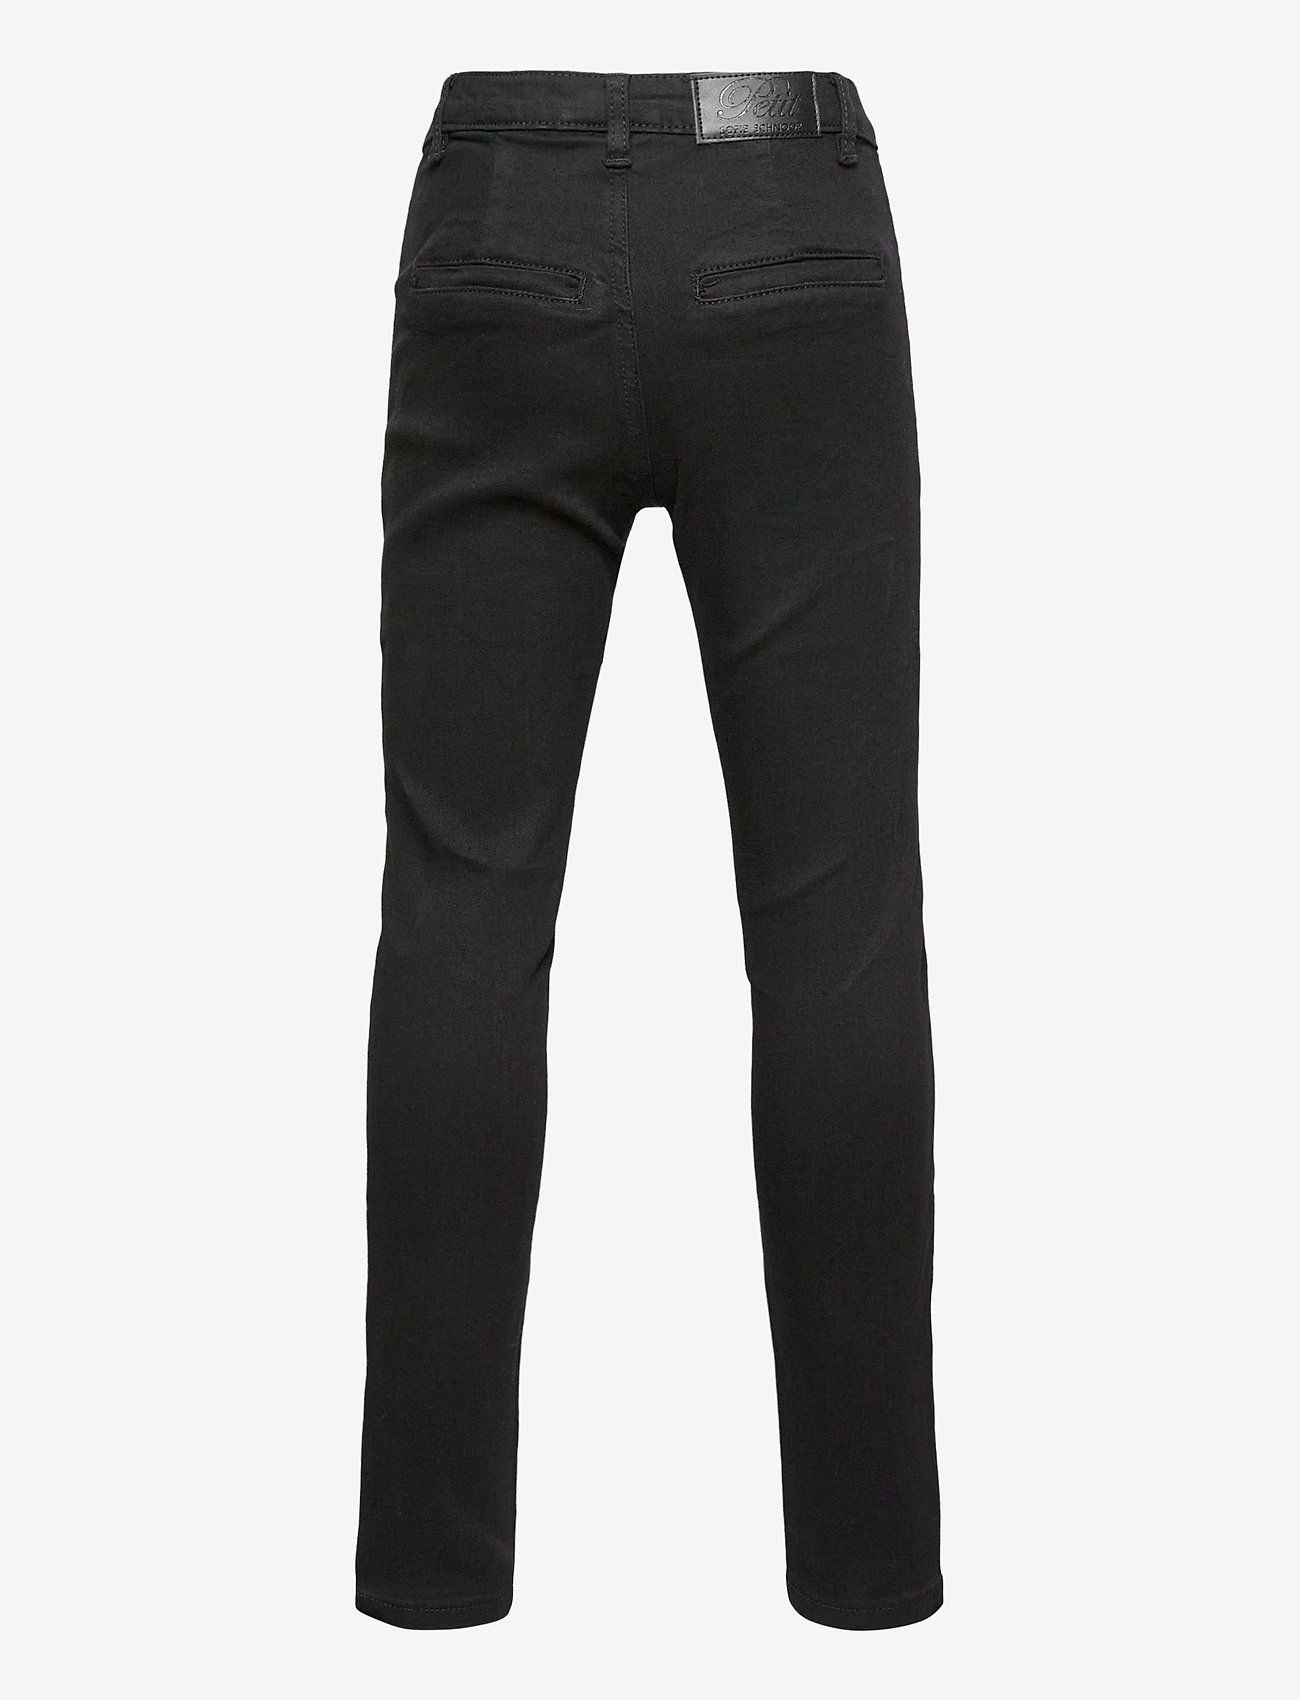 Pants (Black) (54.95 €) - Petit by Sofie Schnoor PvSE4